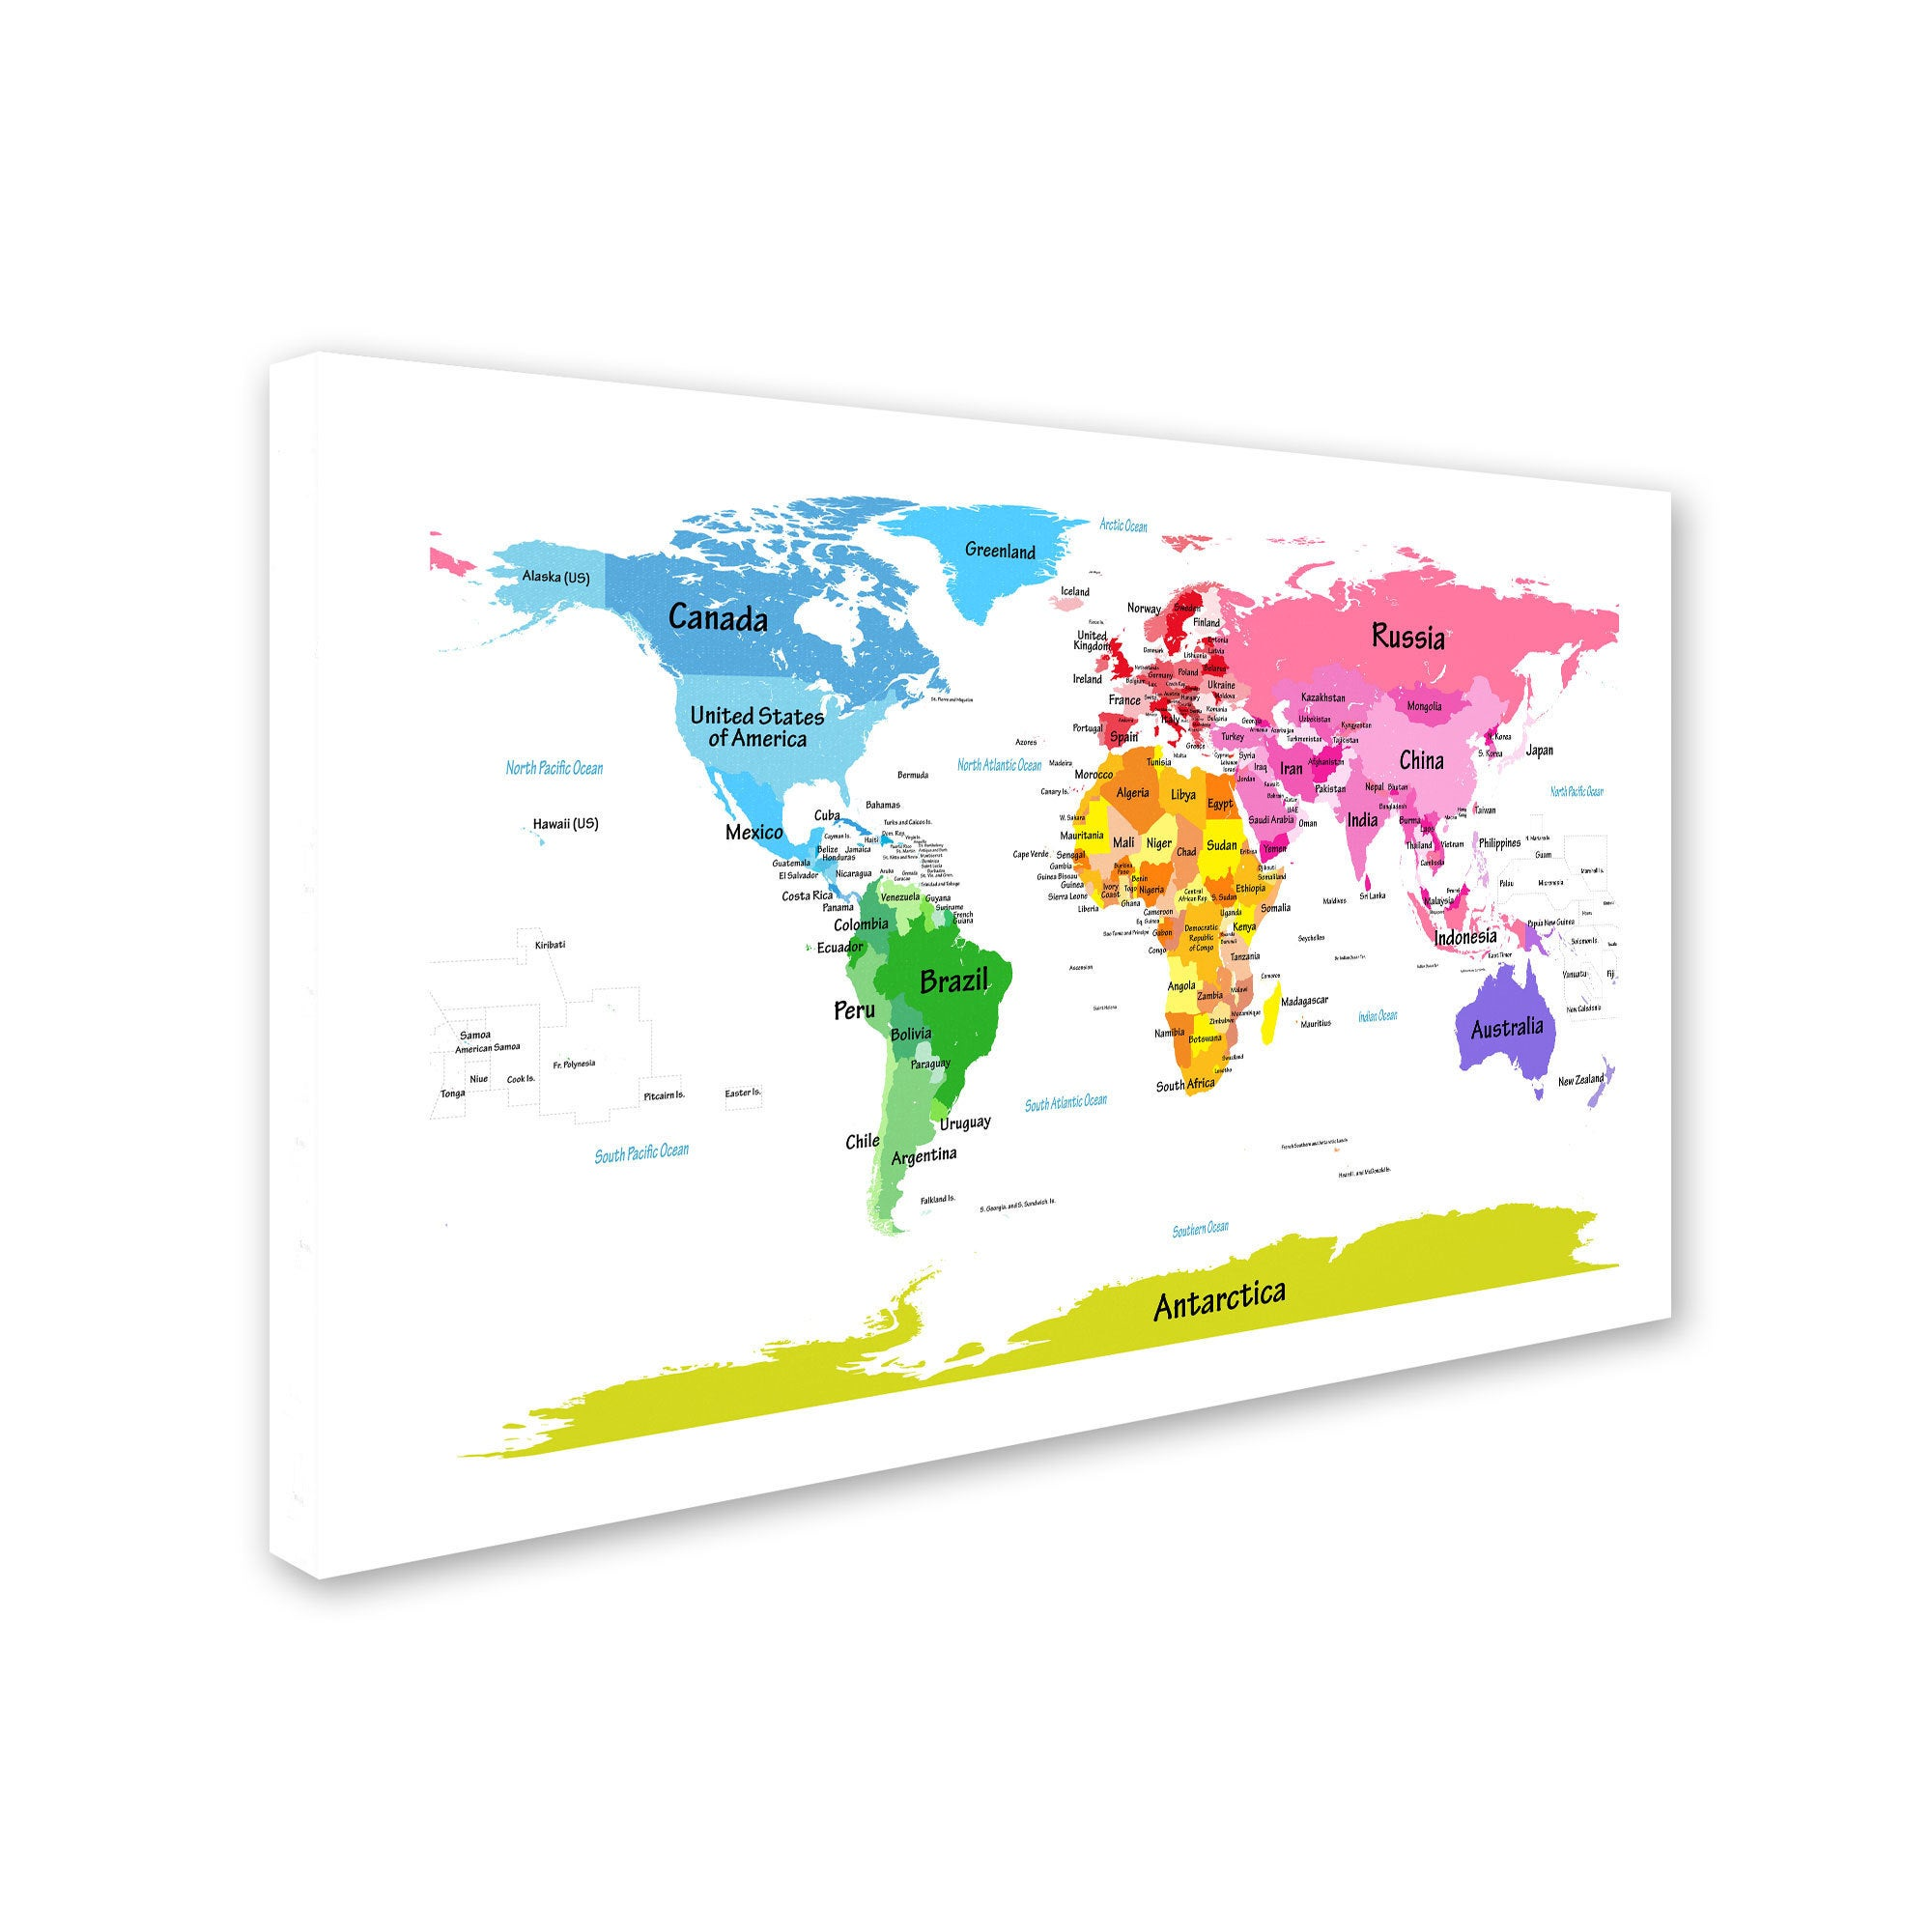 Michael tompsett world map for kids ii canvas art free shipping michael tompsett world map for kids ii canvas art free shipping today overstock 16362353 gumiabroncs Image collections